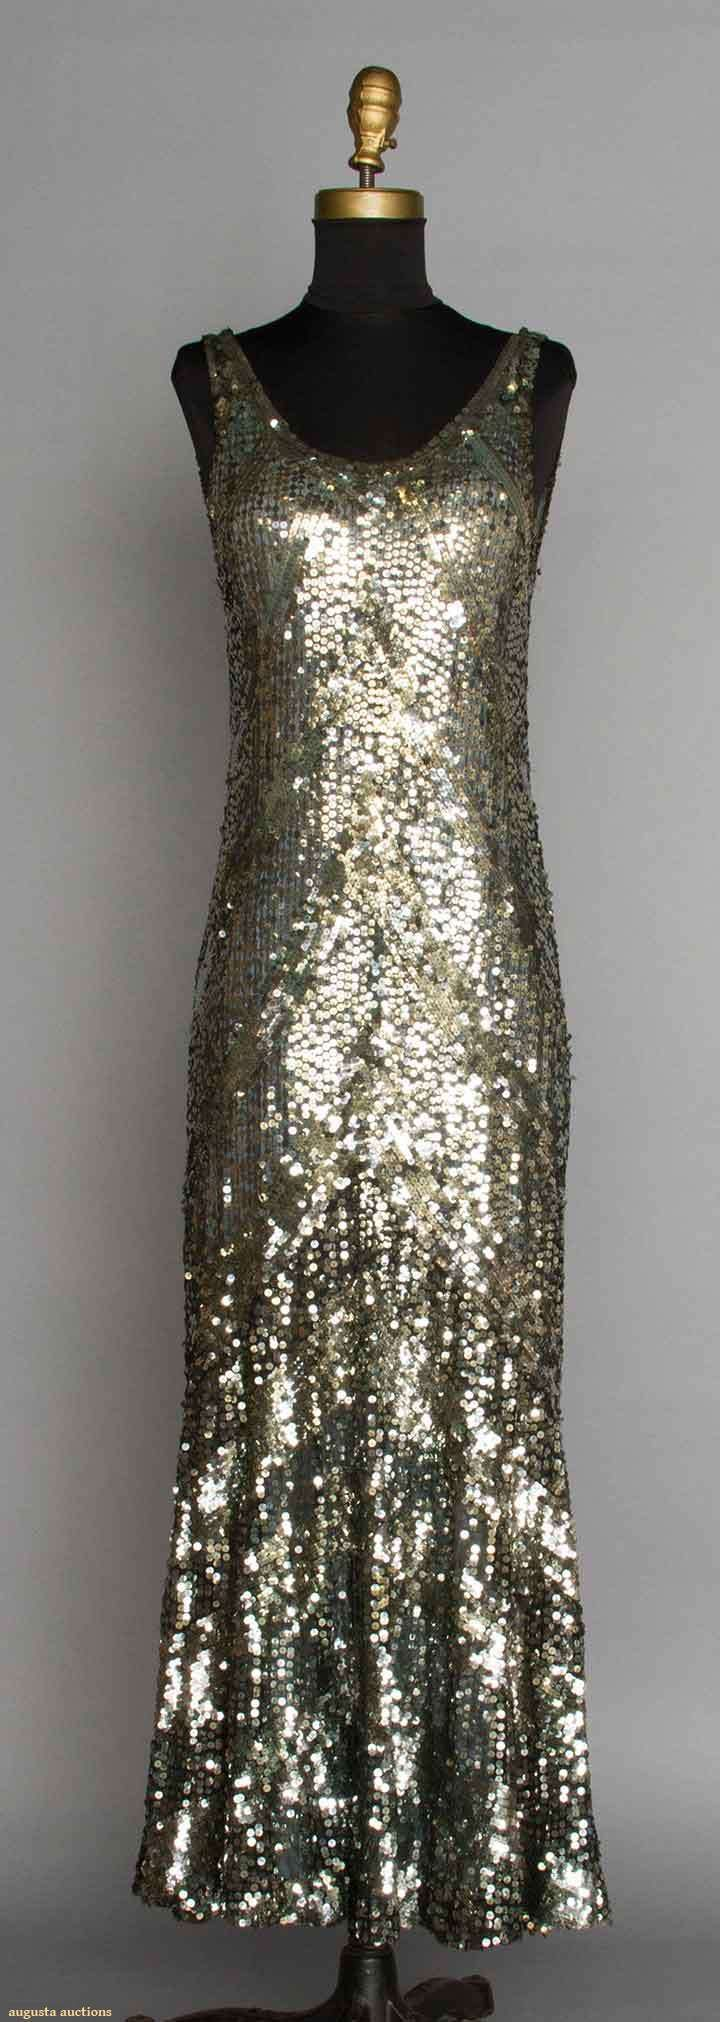 ~SILVER EVENING GOWN, 1930s~   Gown covered w/ silver sequins in chevron pattern, sleeveless, low back, low fluted skirt, blue-gray silk lining